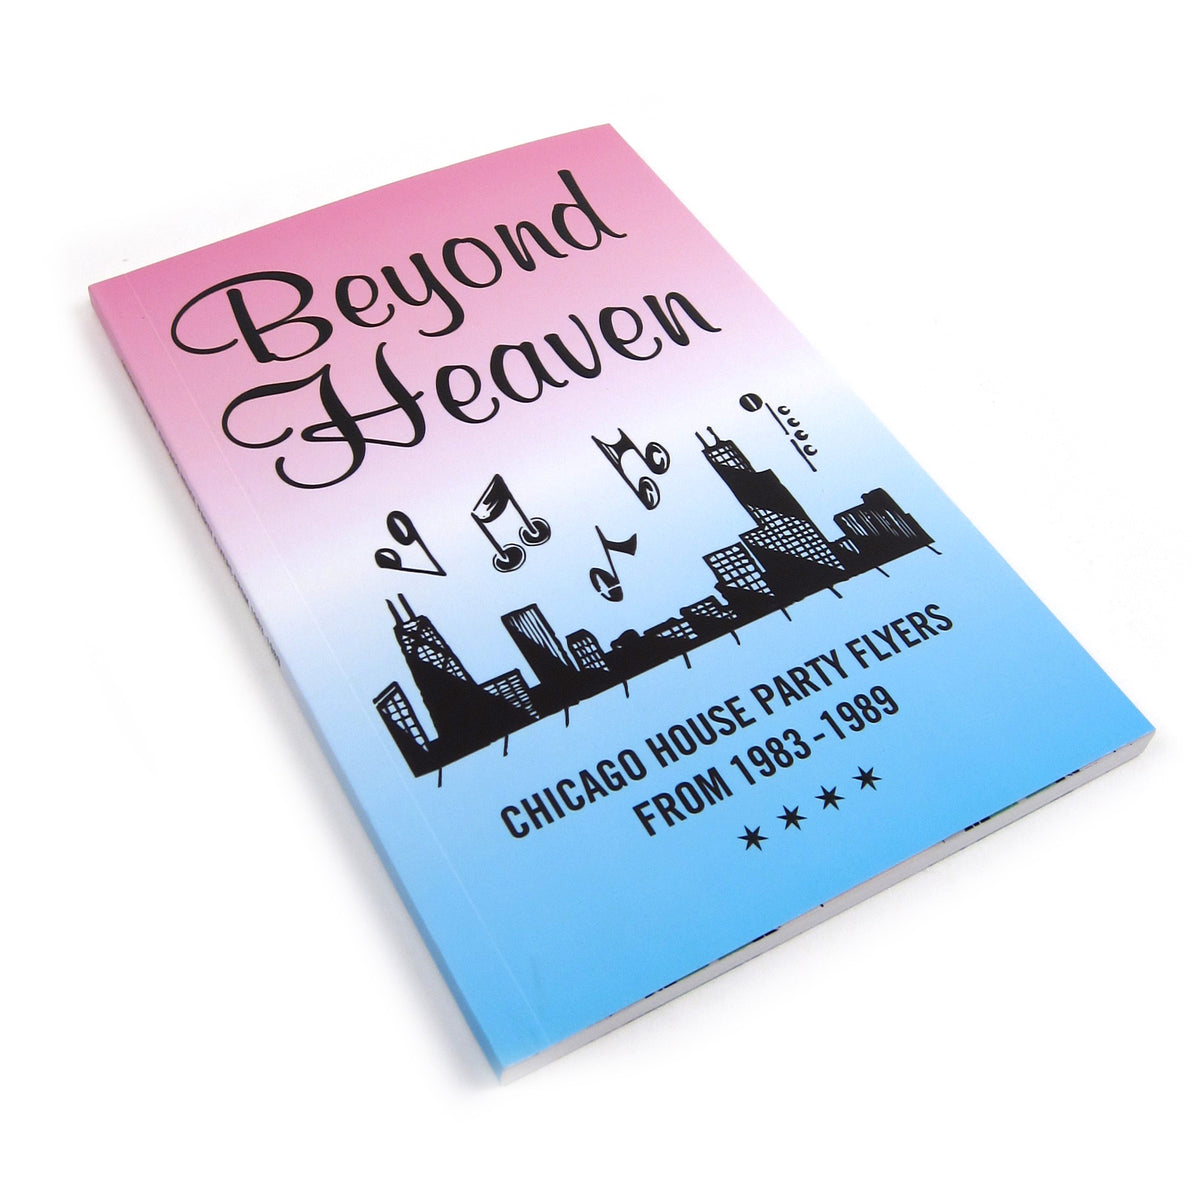 Almighty & Insane Books: Beyond Heaven - Chicago House Party Flyers from 1983-89 Book